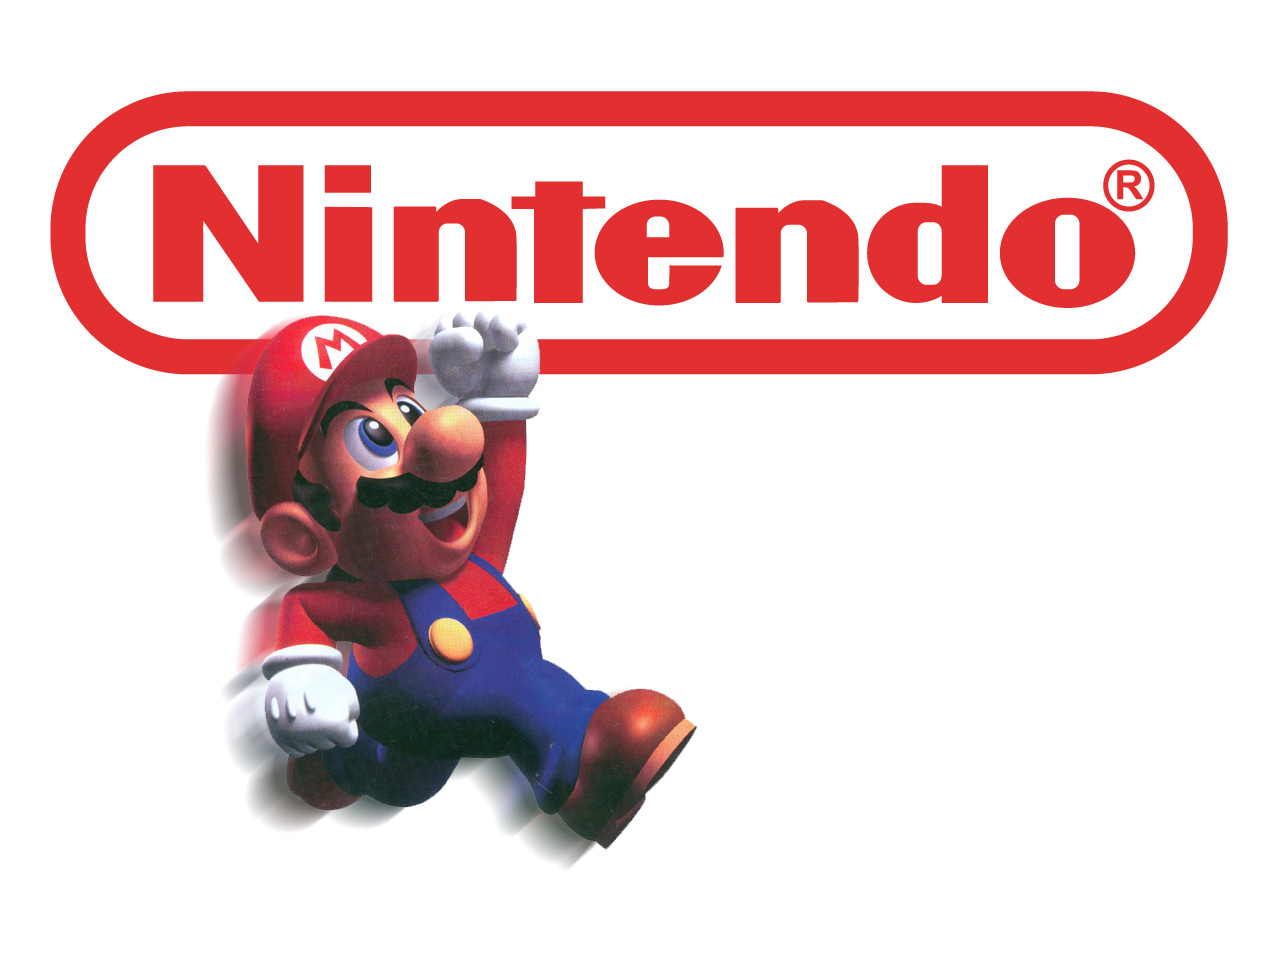 Nintendo Announces Program To Share Ad Revenue With Creators